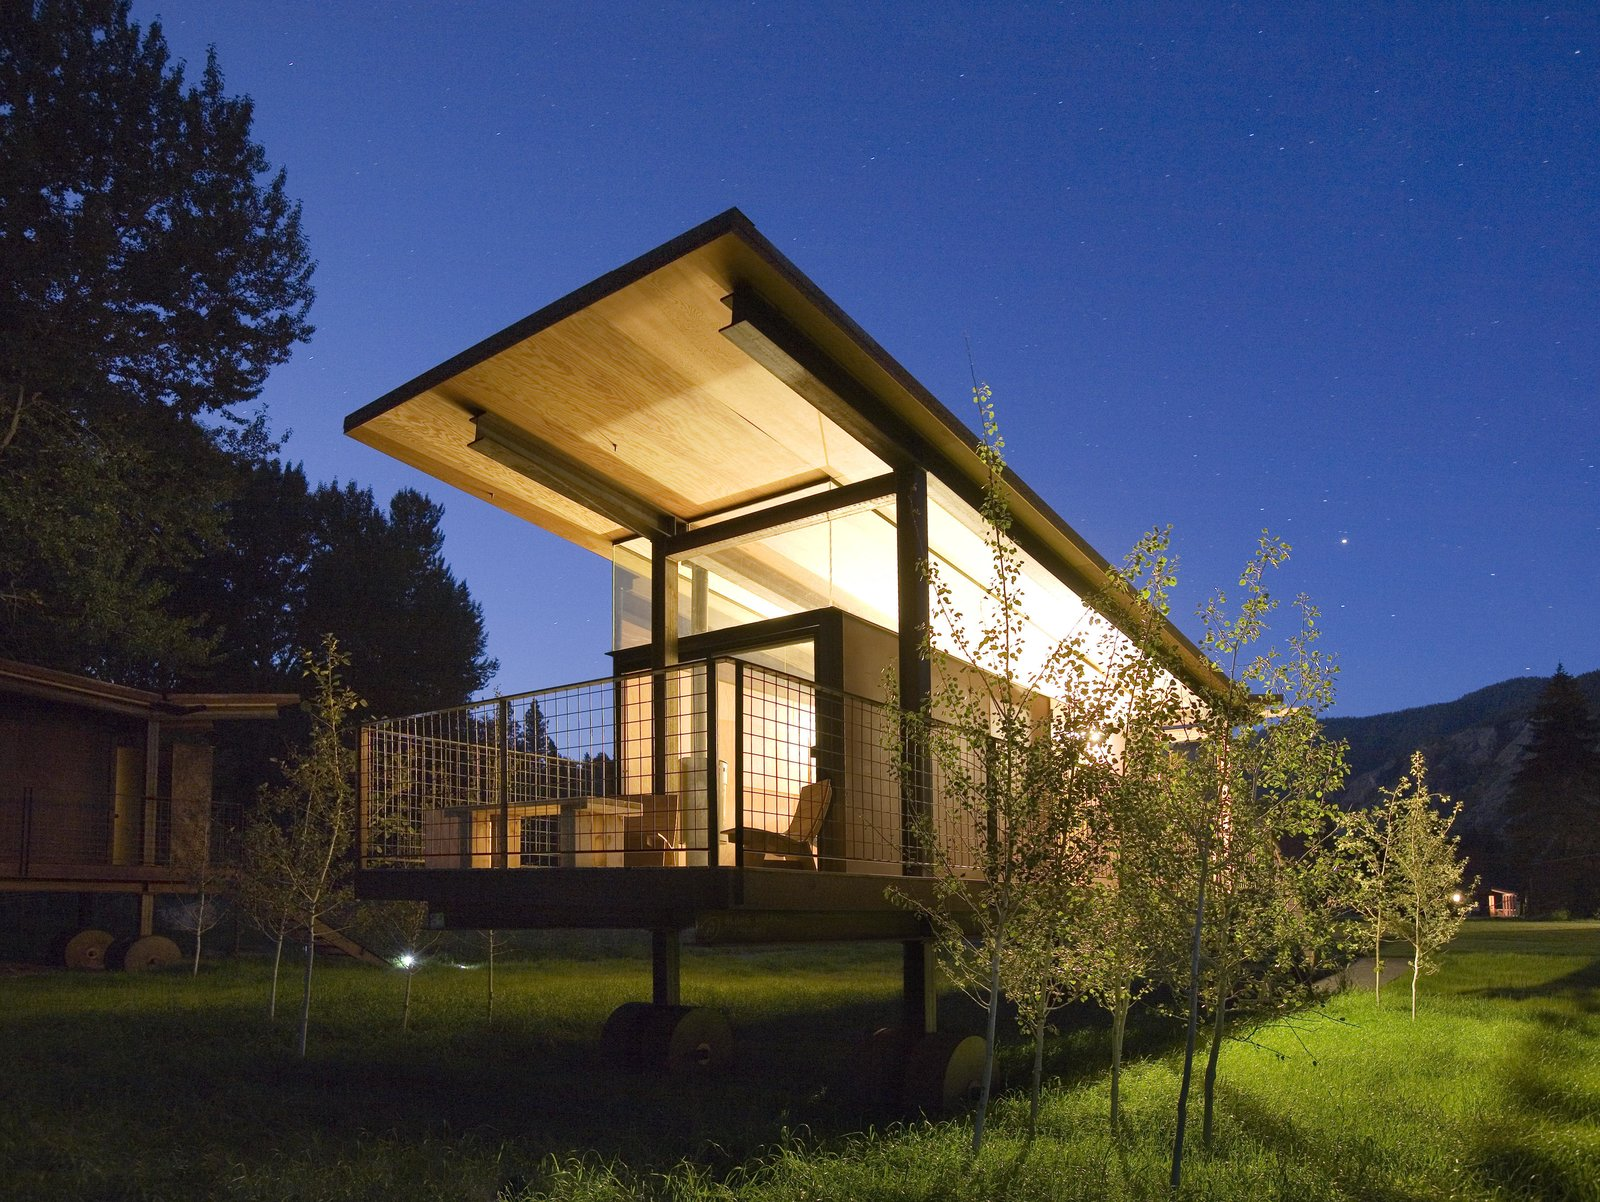 Exterior and Cabin Building Type Rolling Huts   Olson Kundig  Rolling Huts by Olson Kundig